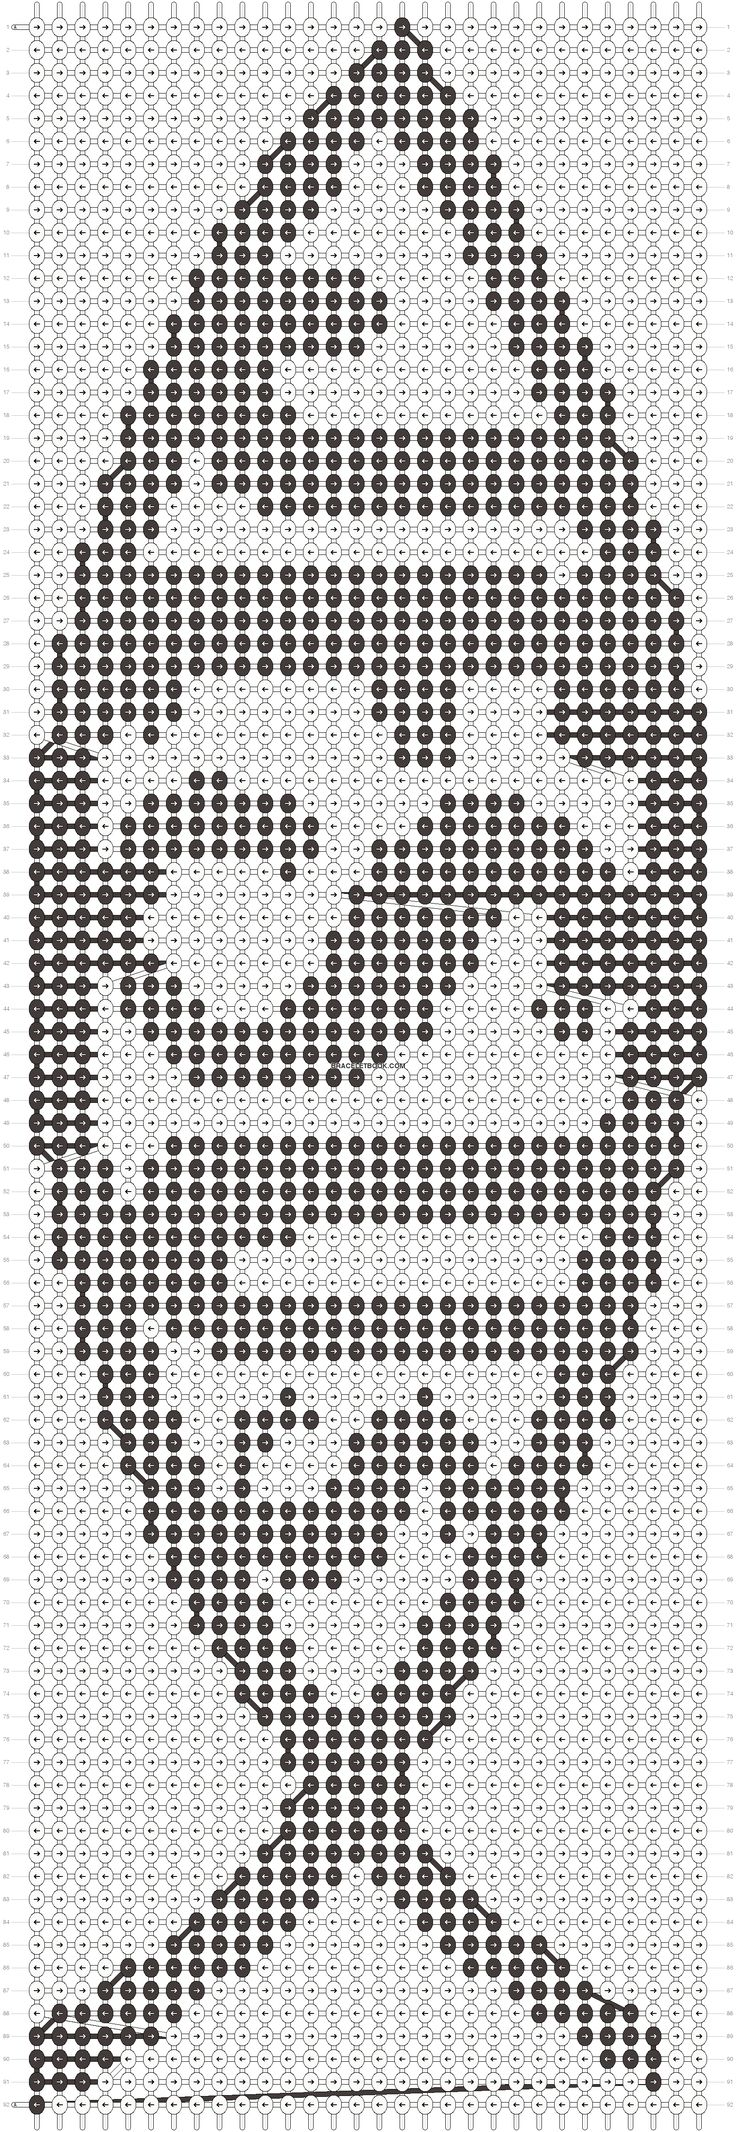 259 best images about Christian Cross Stitch Freebies. on